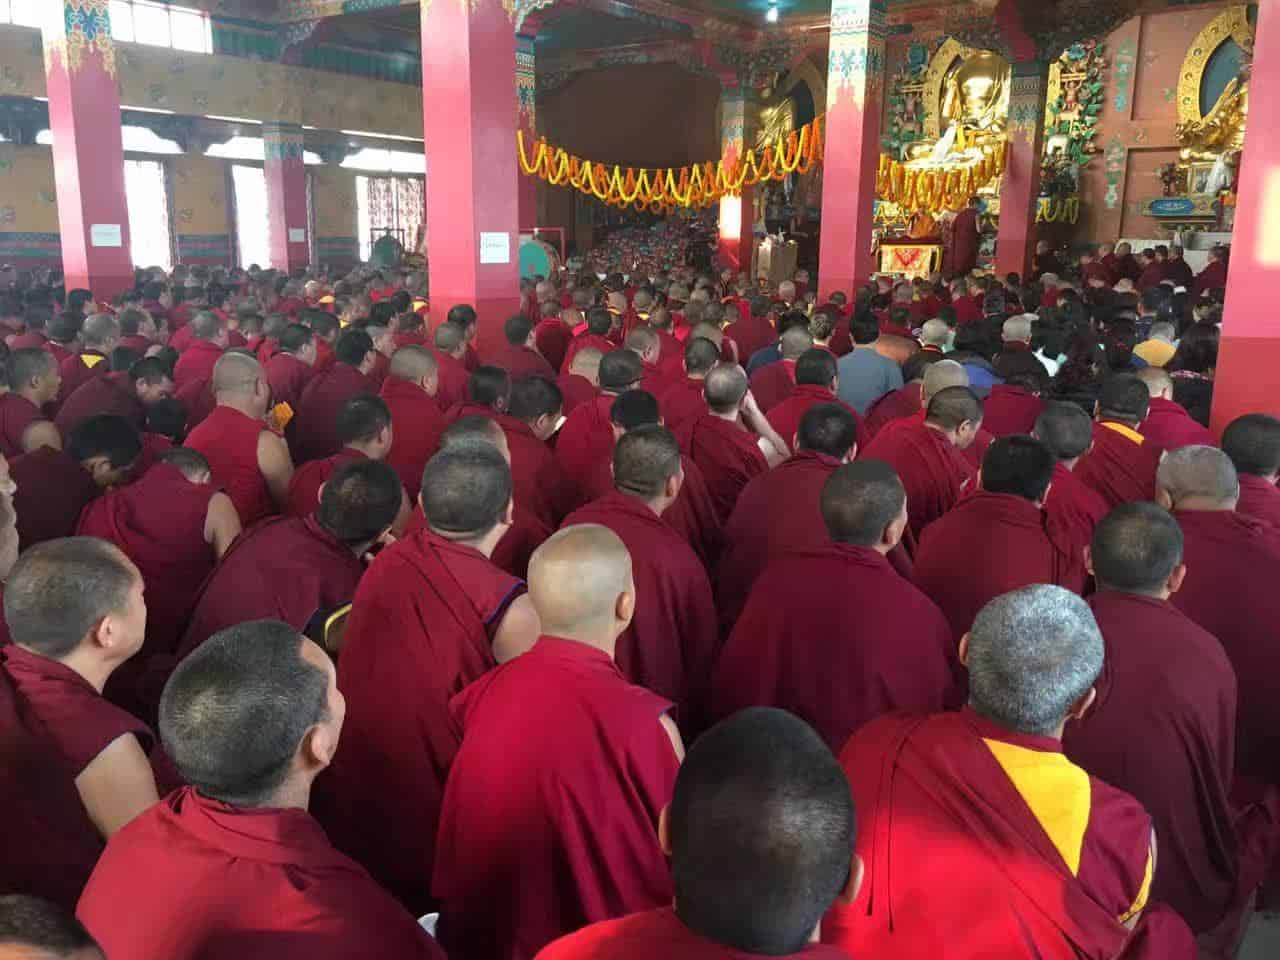 Gosok Rinpoche India 2017 longlife 0642b3f385ec3c12e7050ee2afeac16